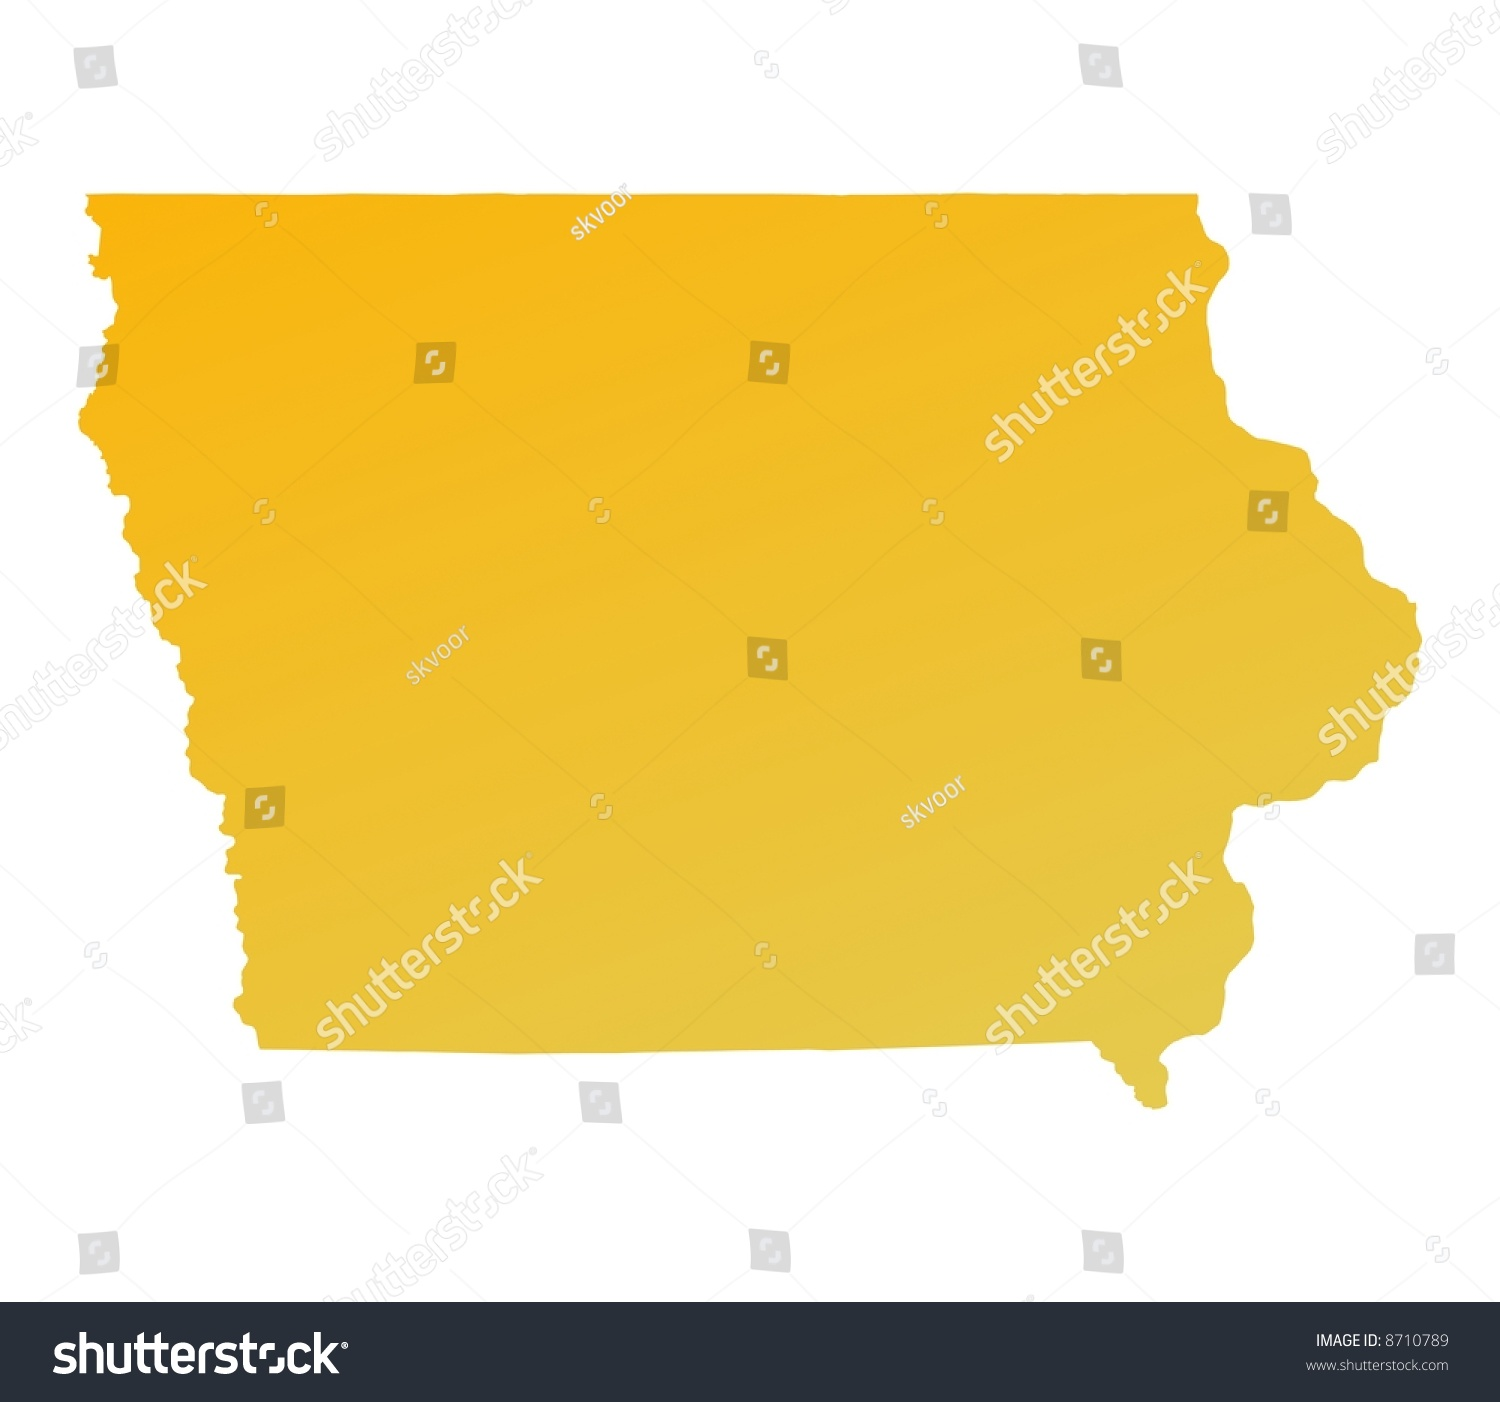 Des Moines Iowa Map Google Maps For Android Canyon Of The Ancients Map - Iowa in usa map